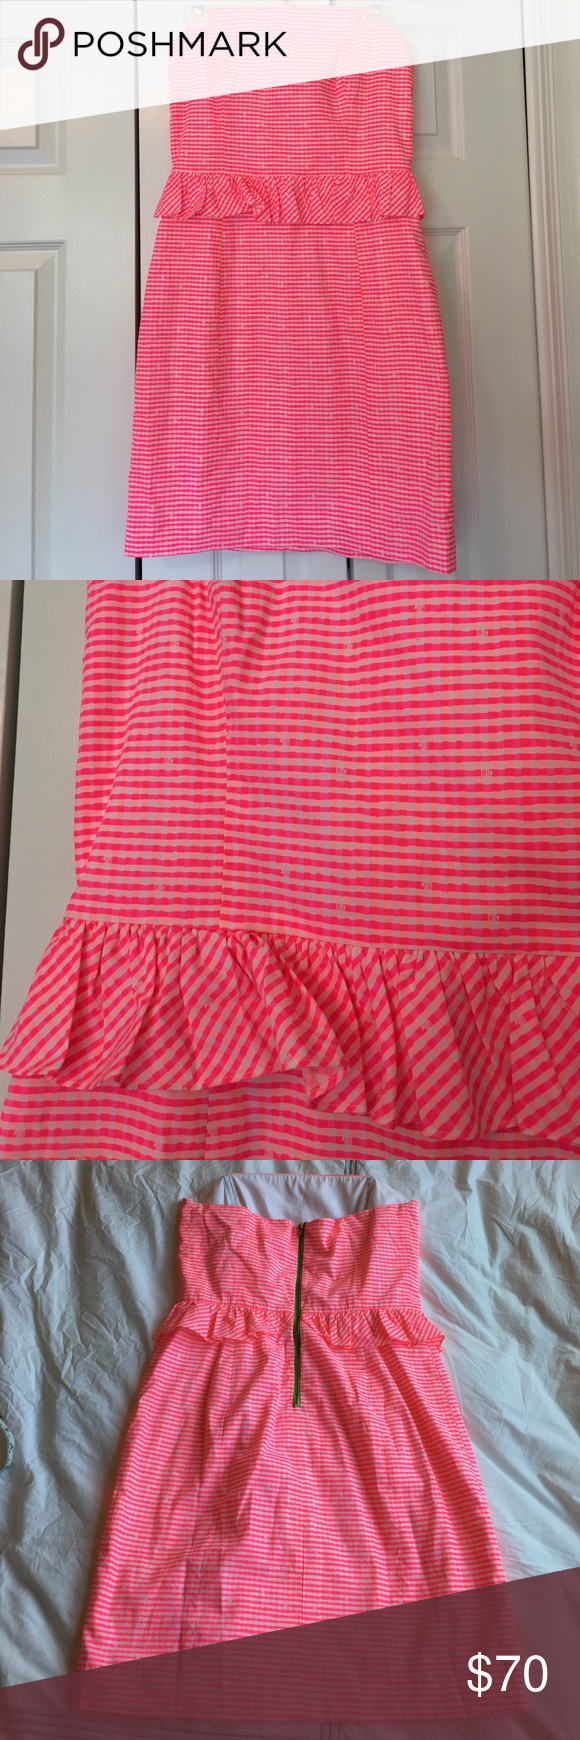 Lilly Pulitzer Lowe dress in fiesta pink gingham